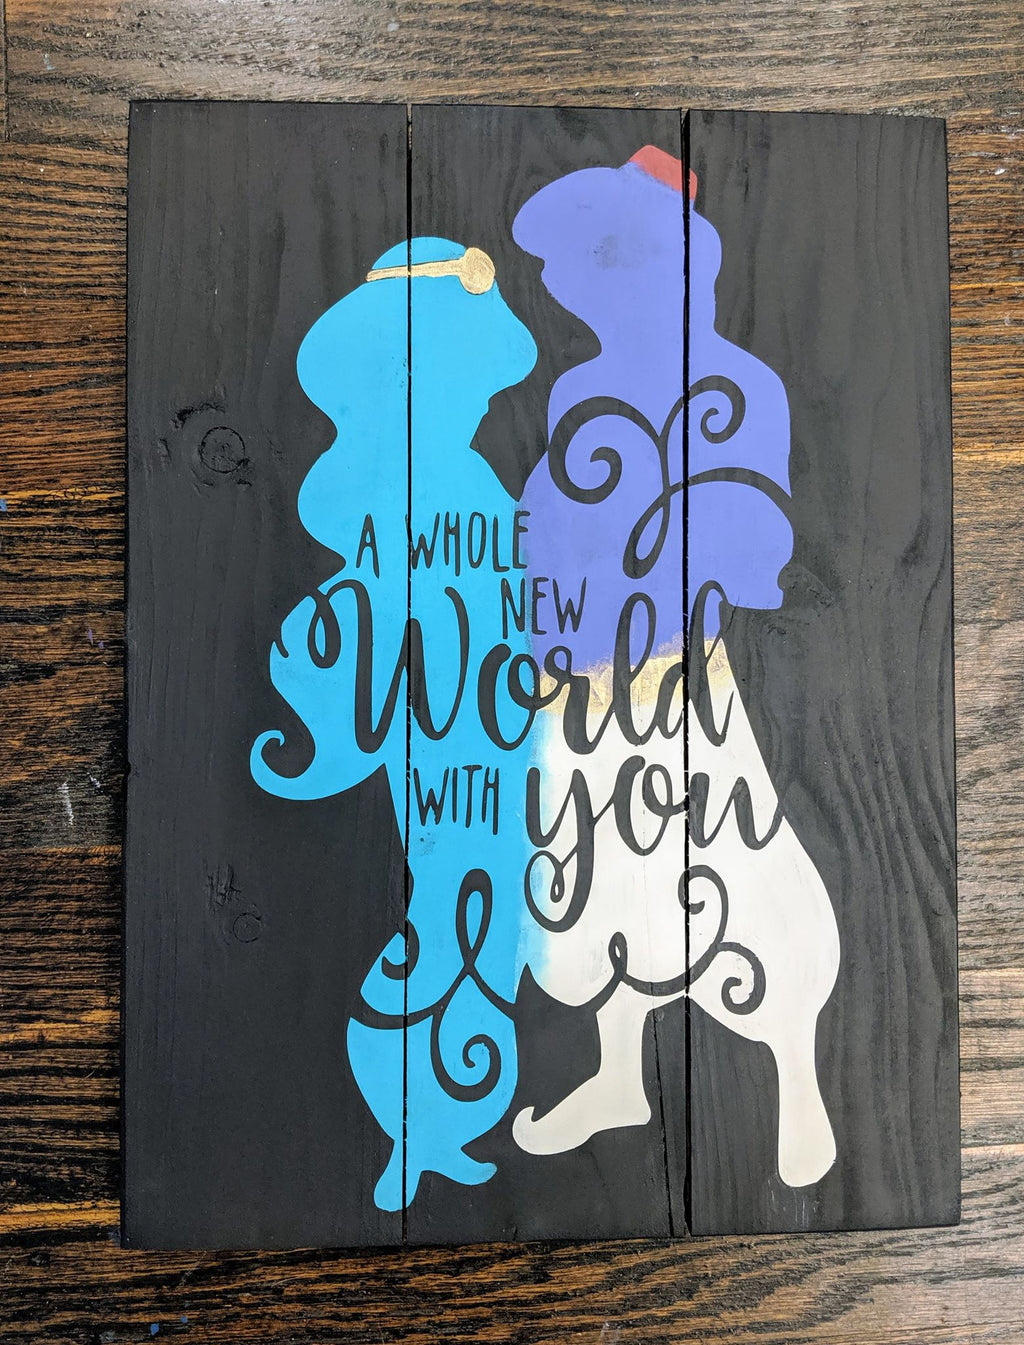 A whole new world with you - Aladdin